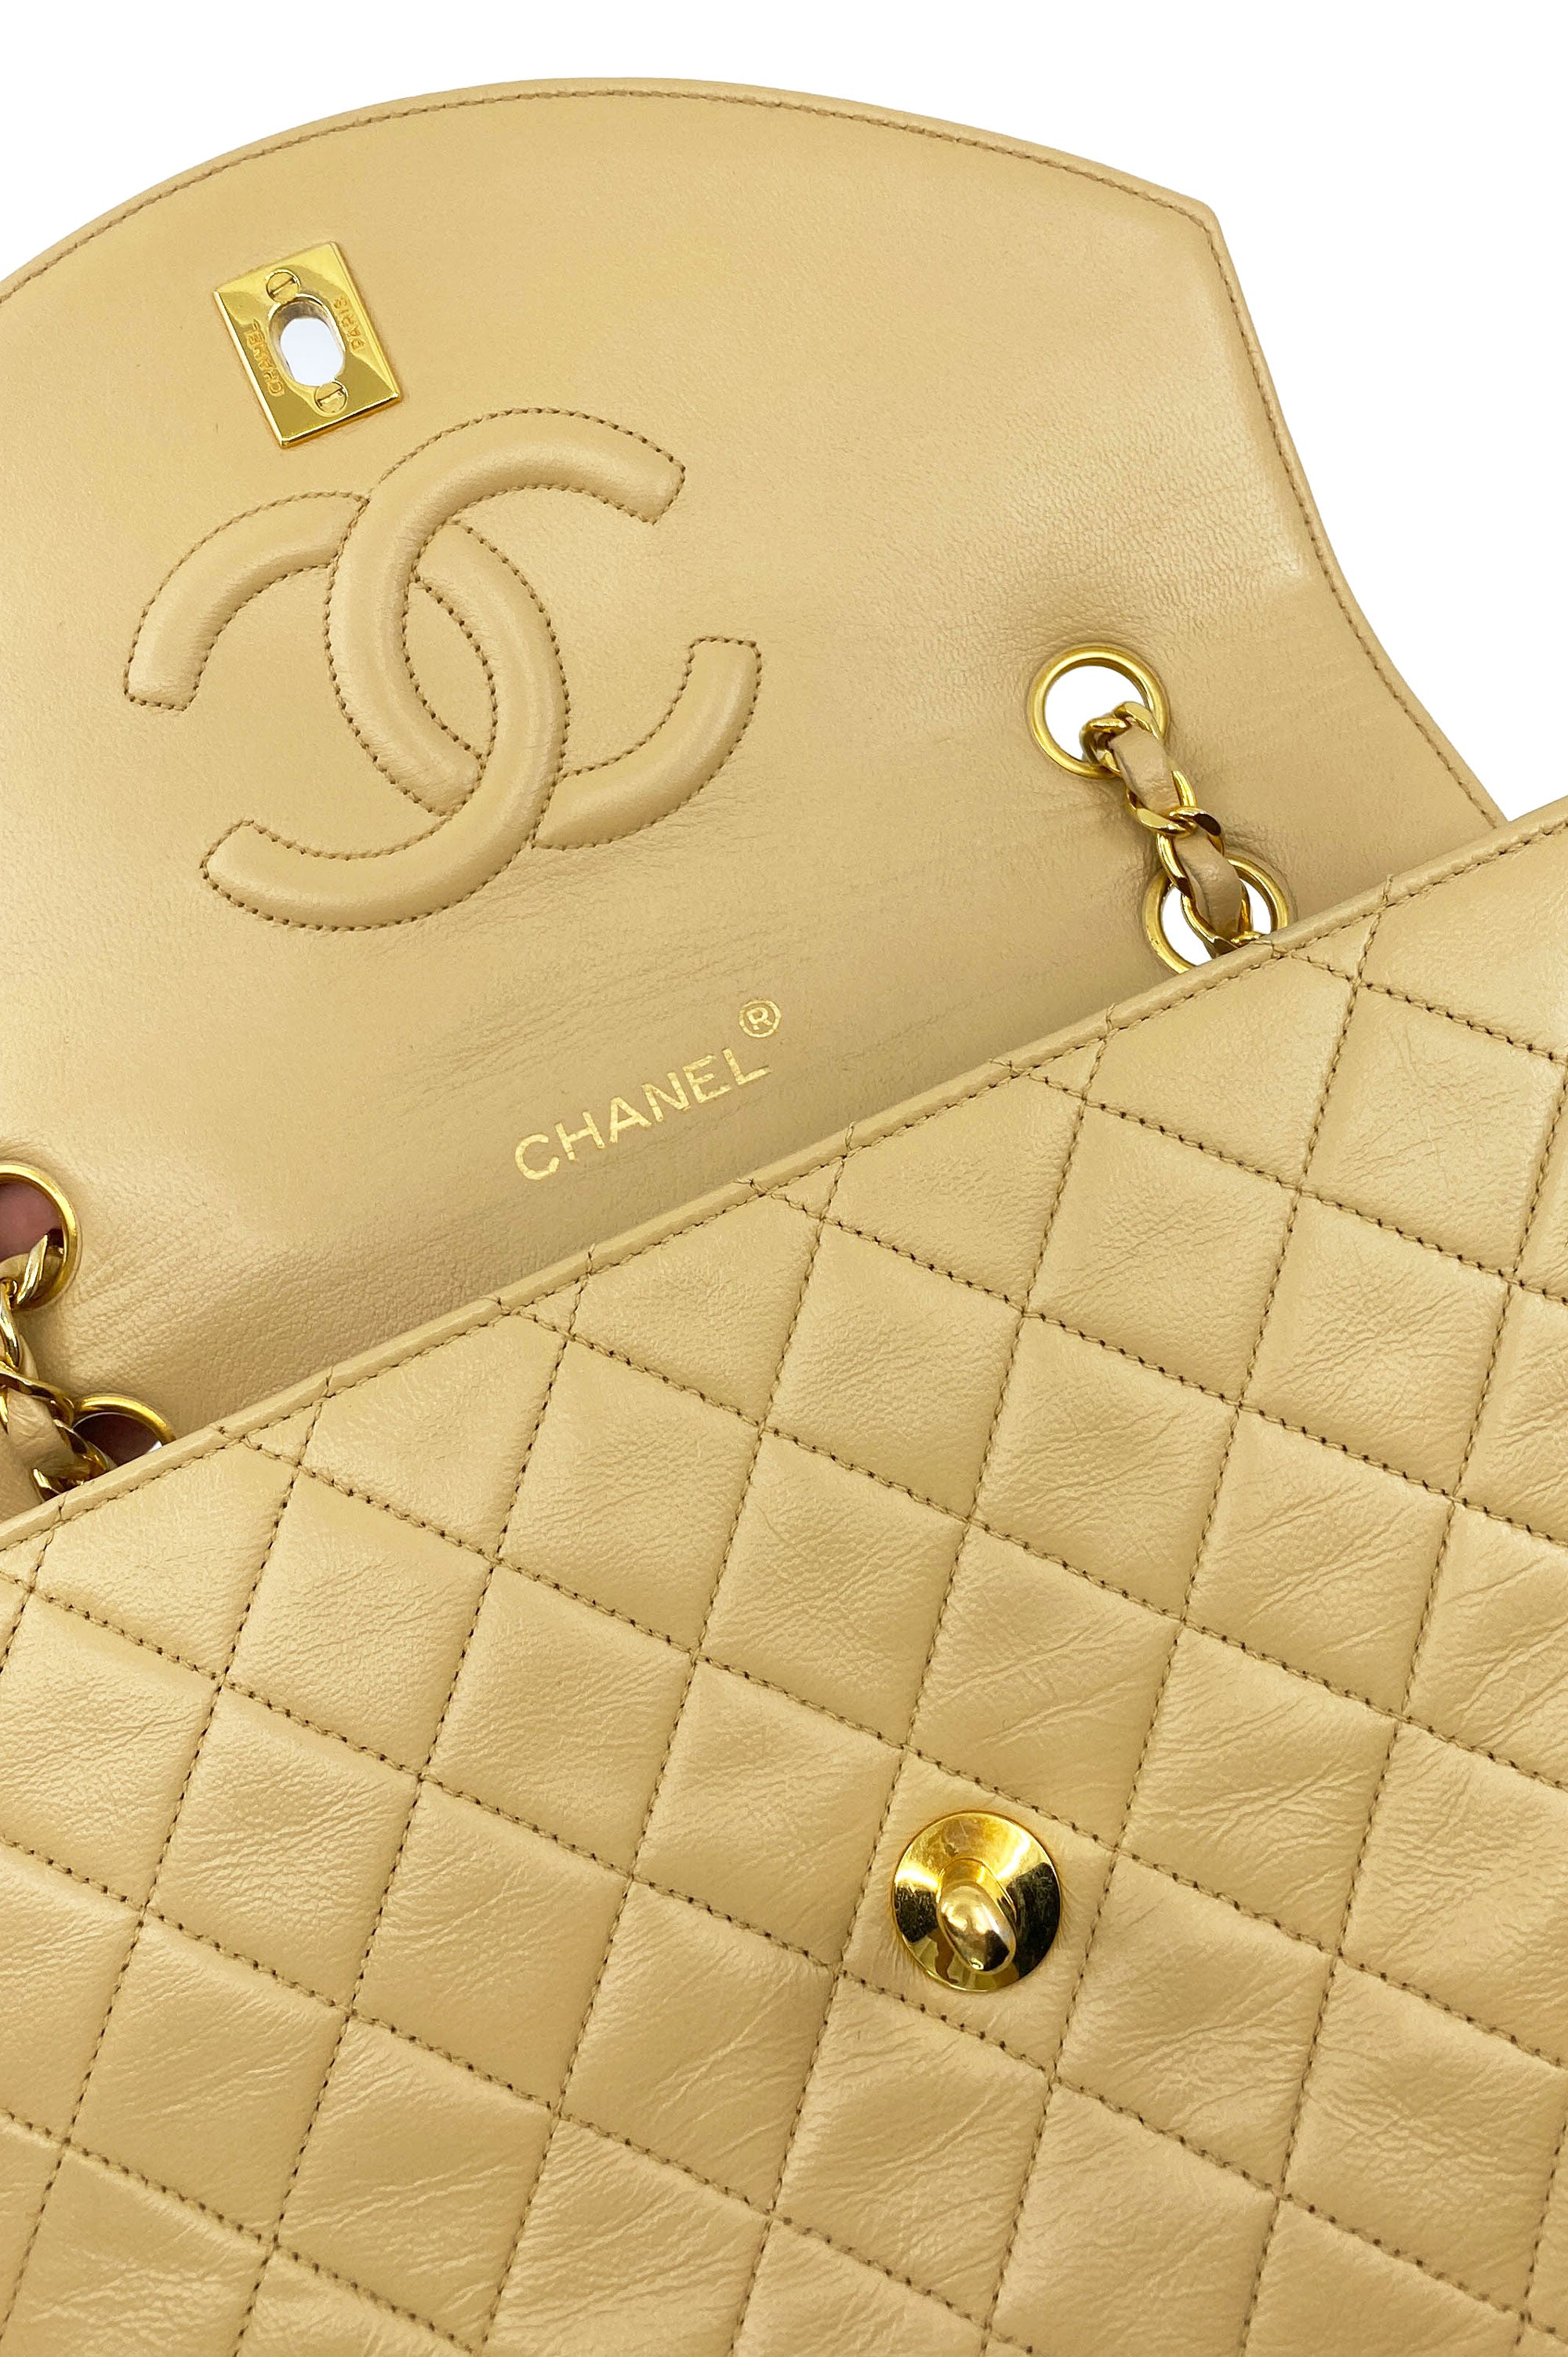 CHANEL Vintage Flap Bag Beige